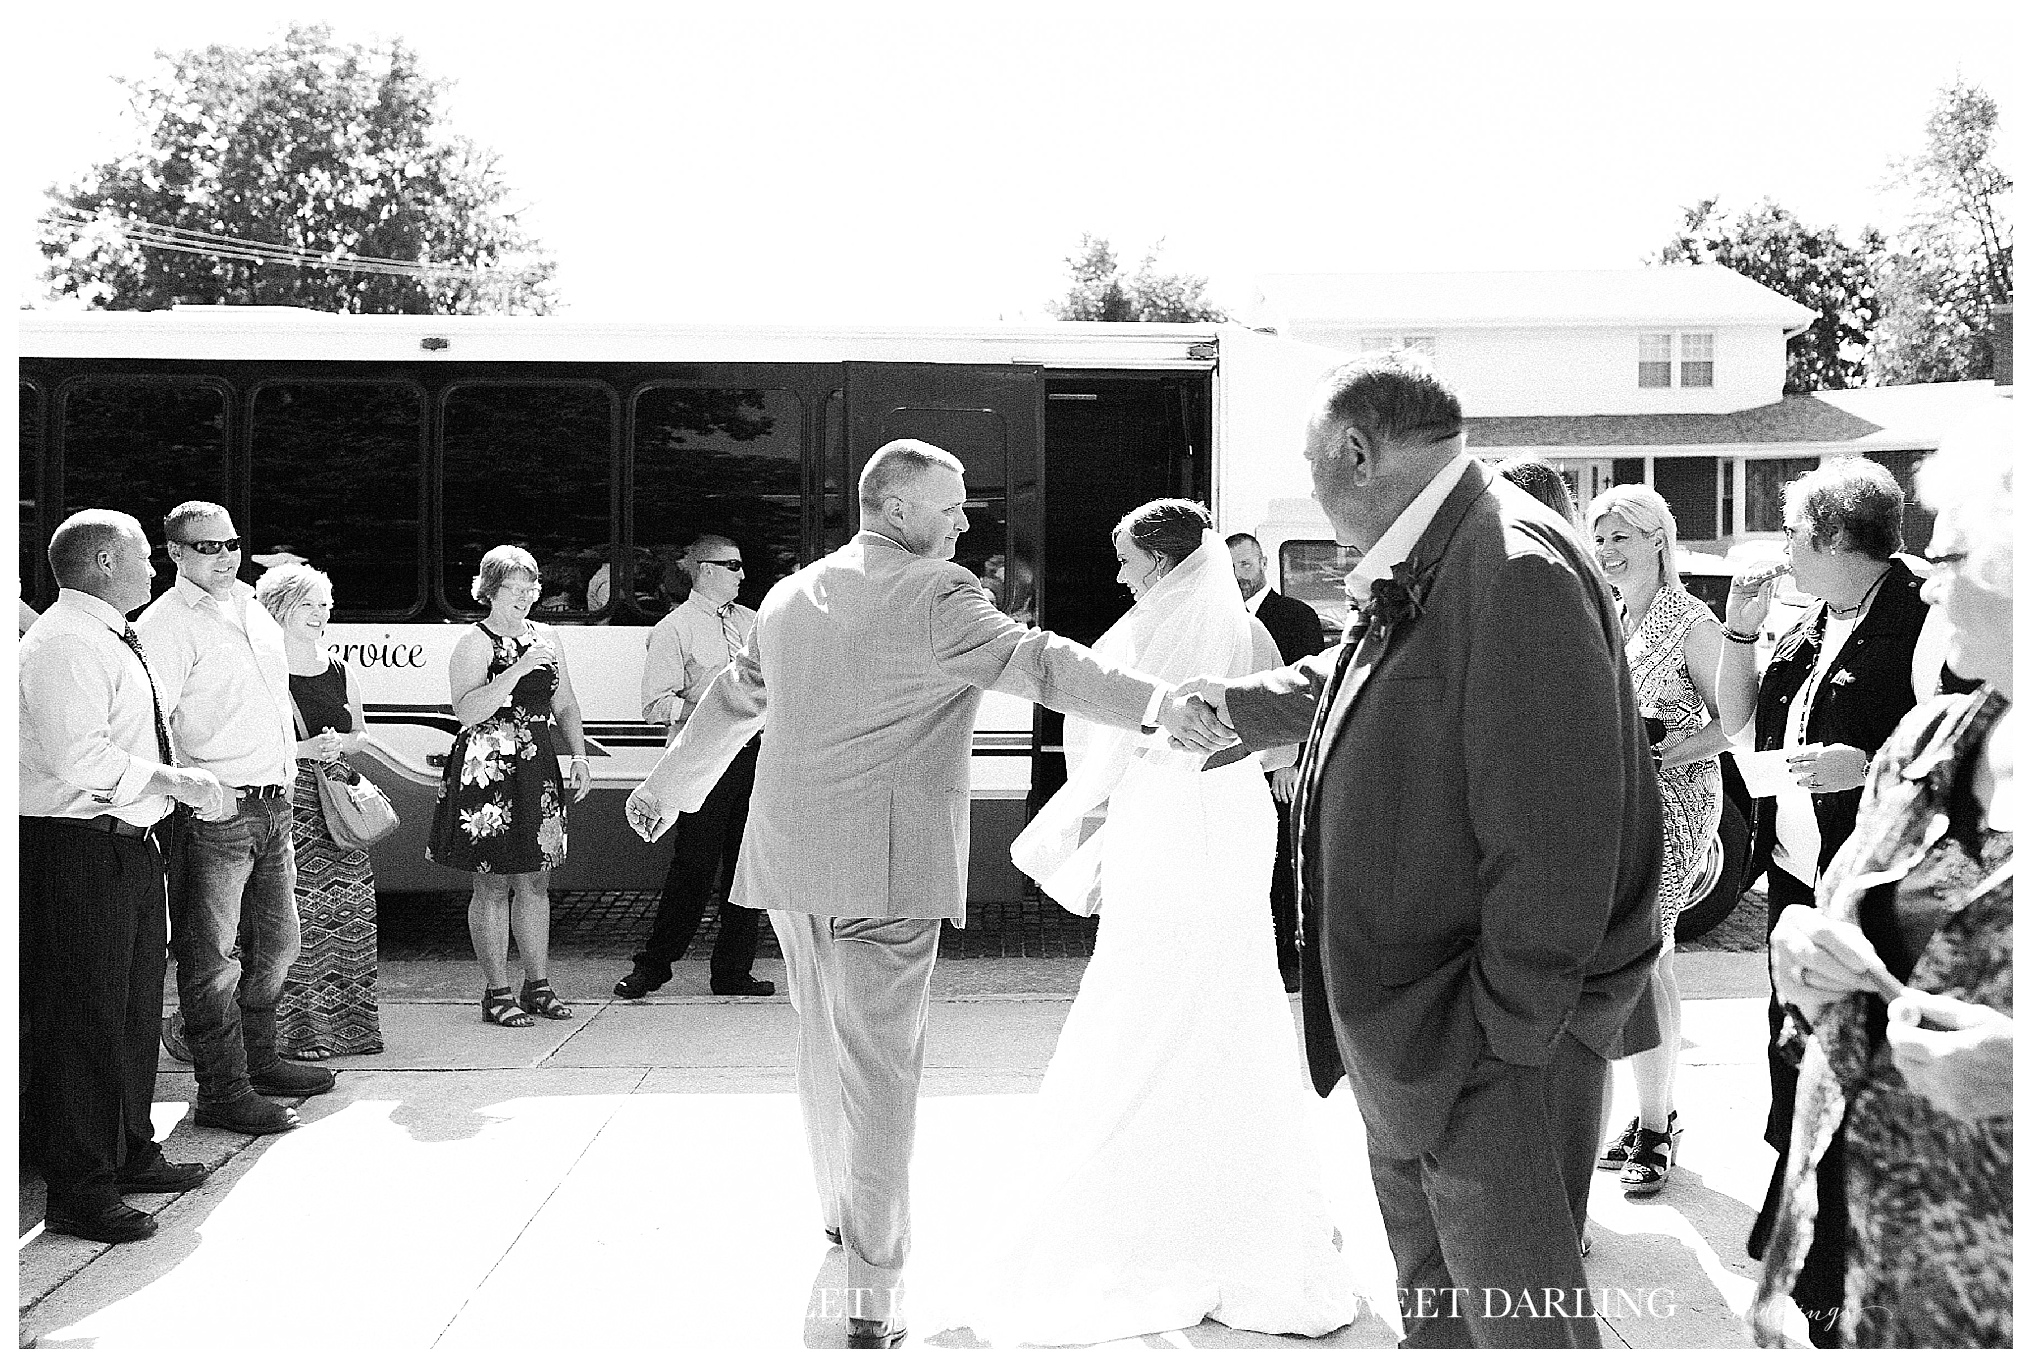 champaign-county-royal-paxton-illinois-sweet-darling-weddings-photography-red-navy-roses_1420.jpg